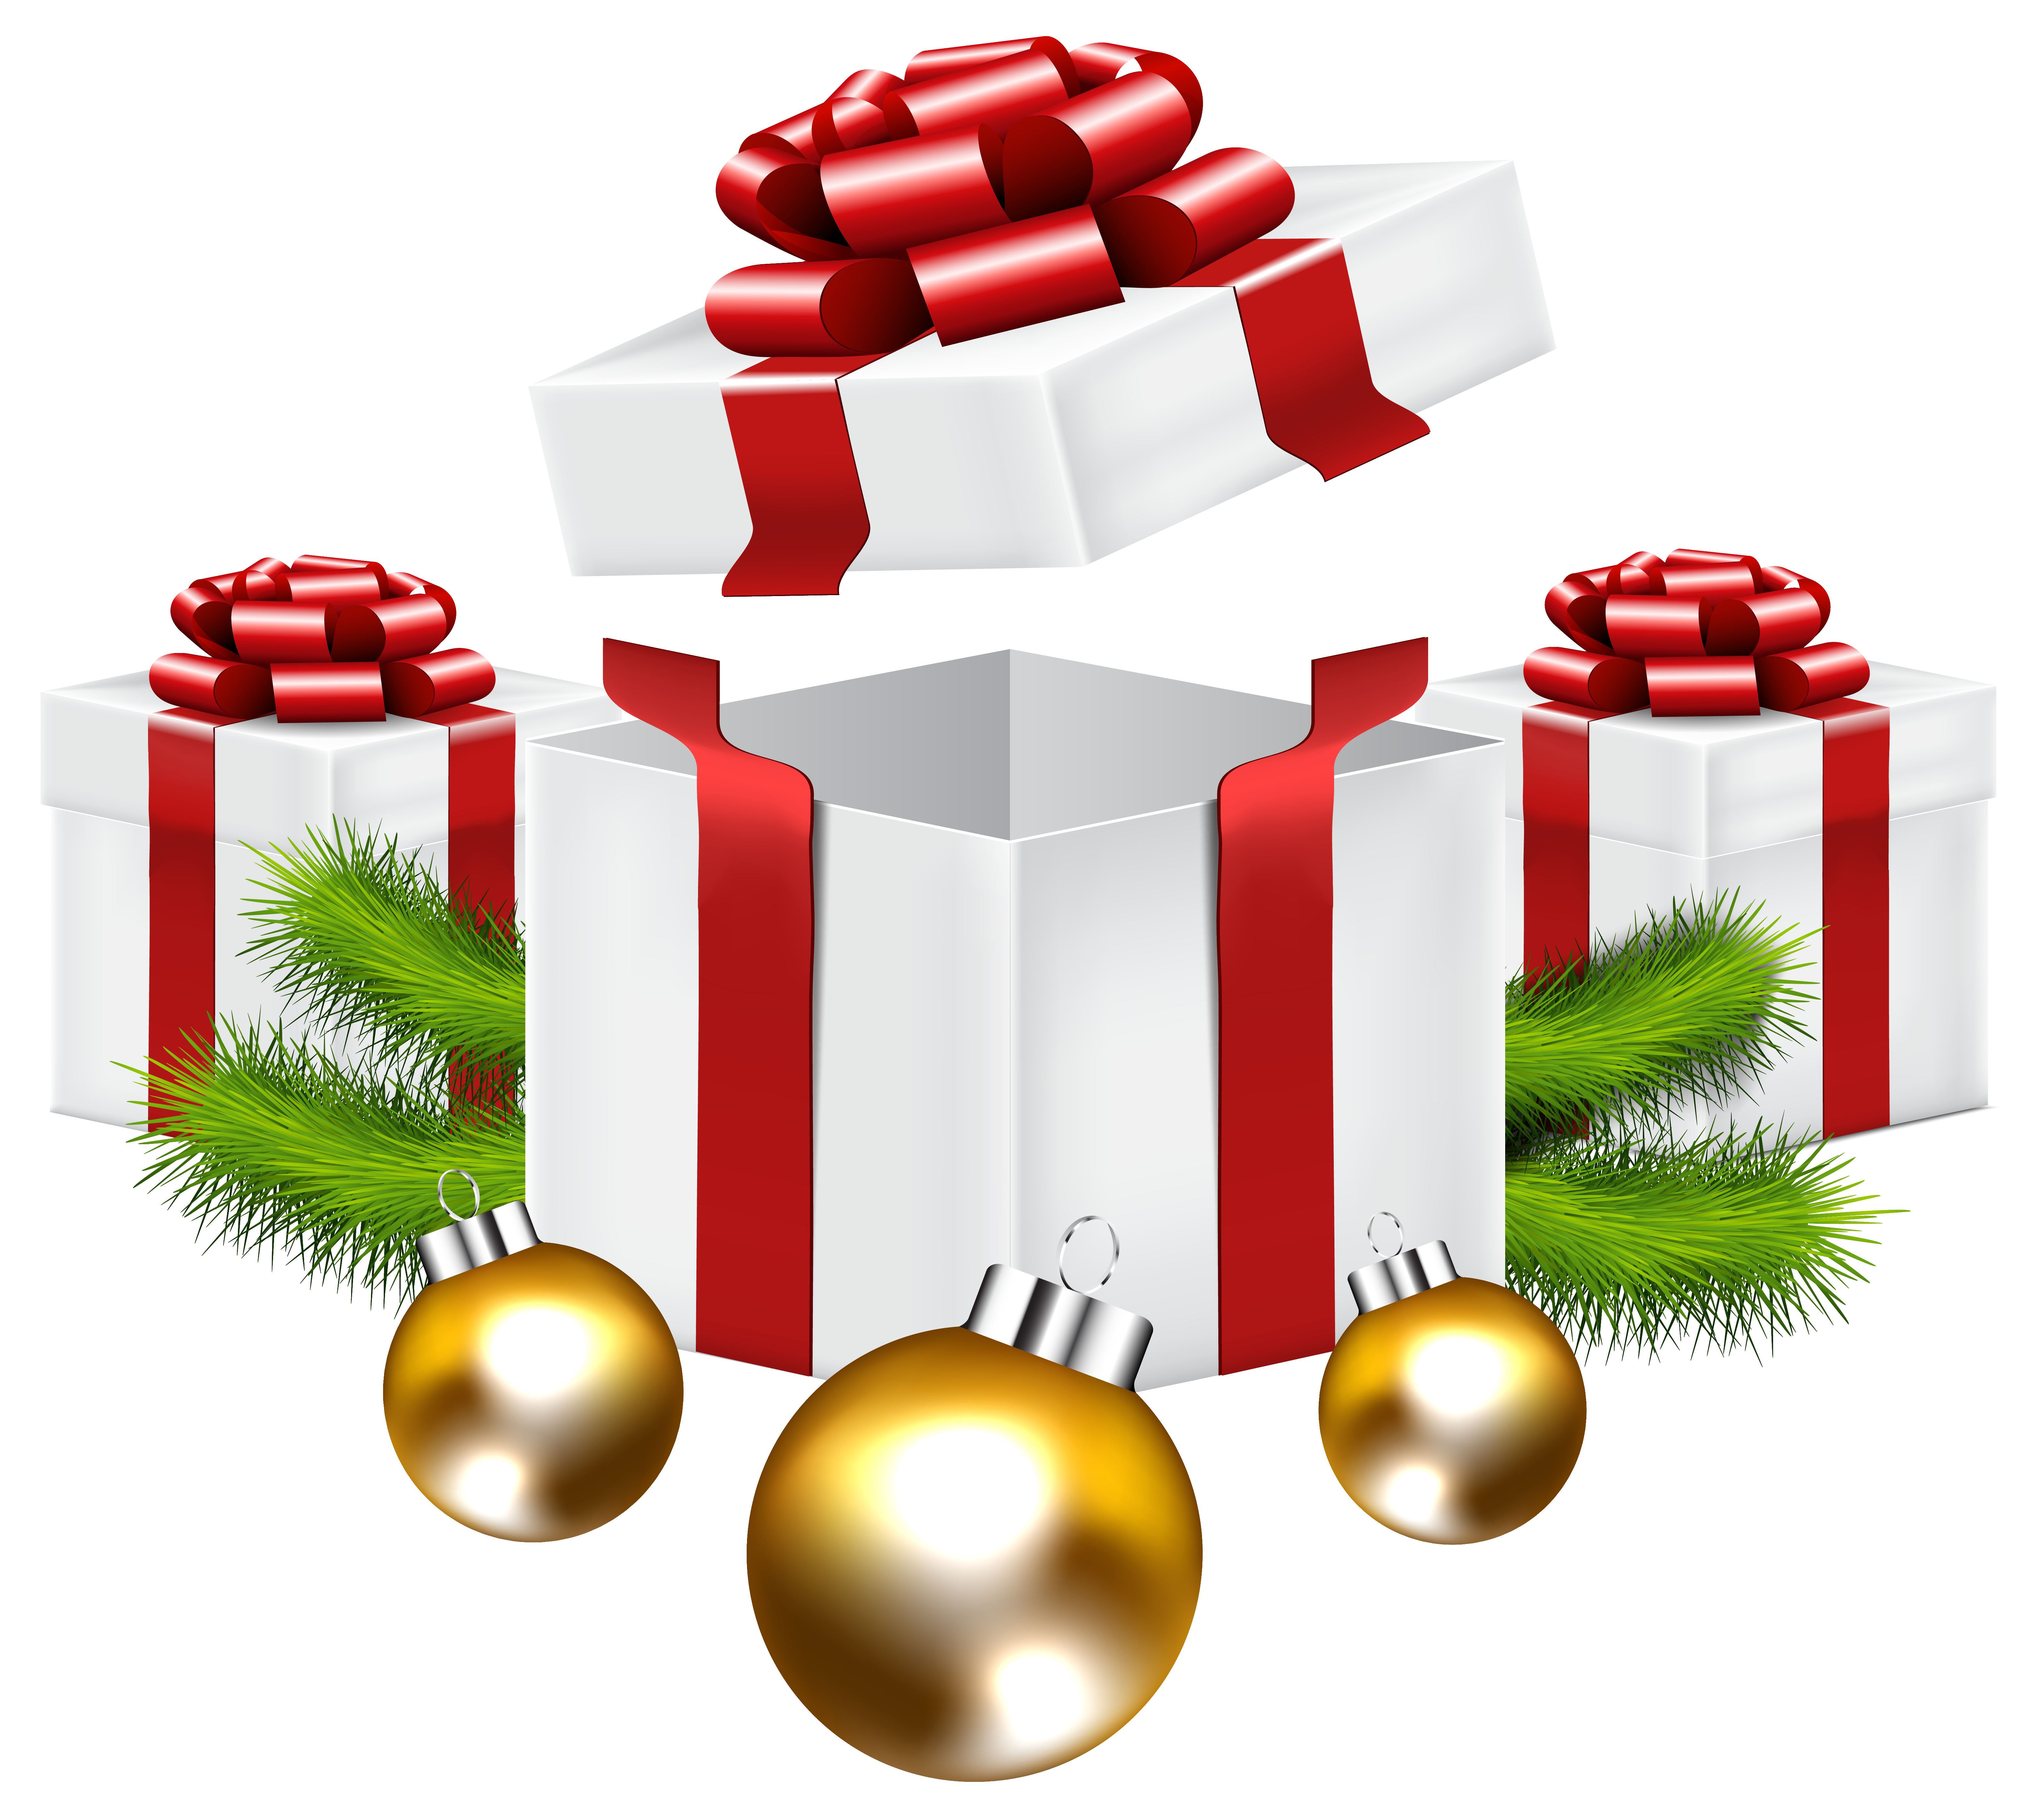 Christmas Toys Clip Art : Christmas gifts picture clipart best